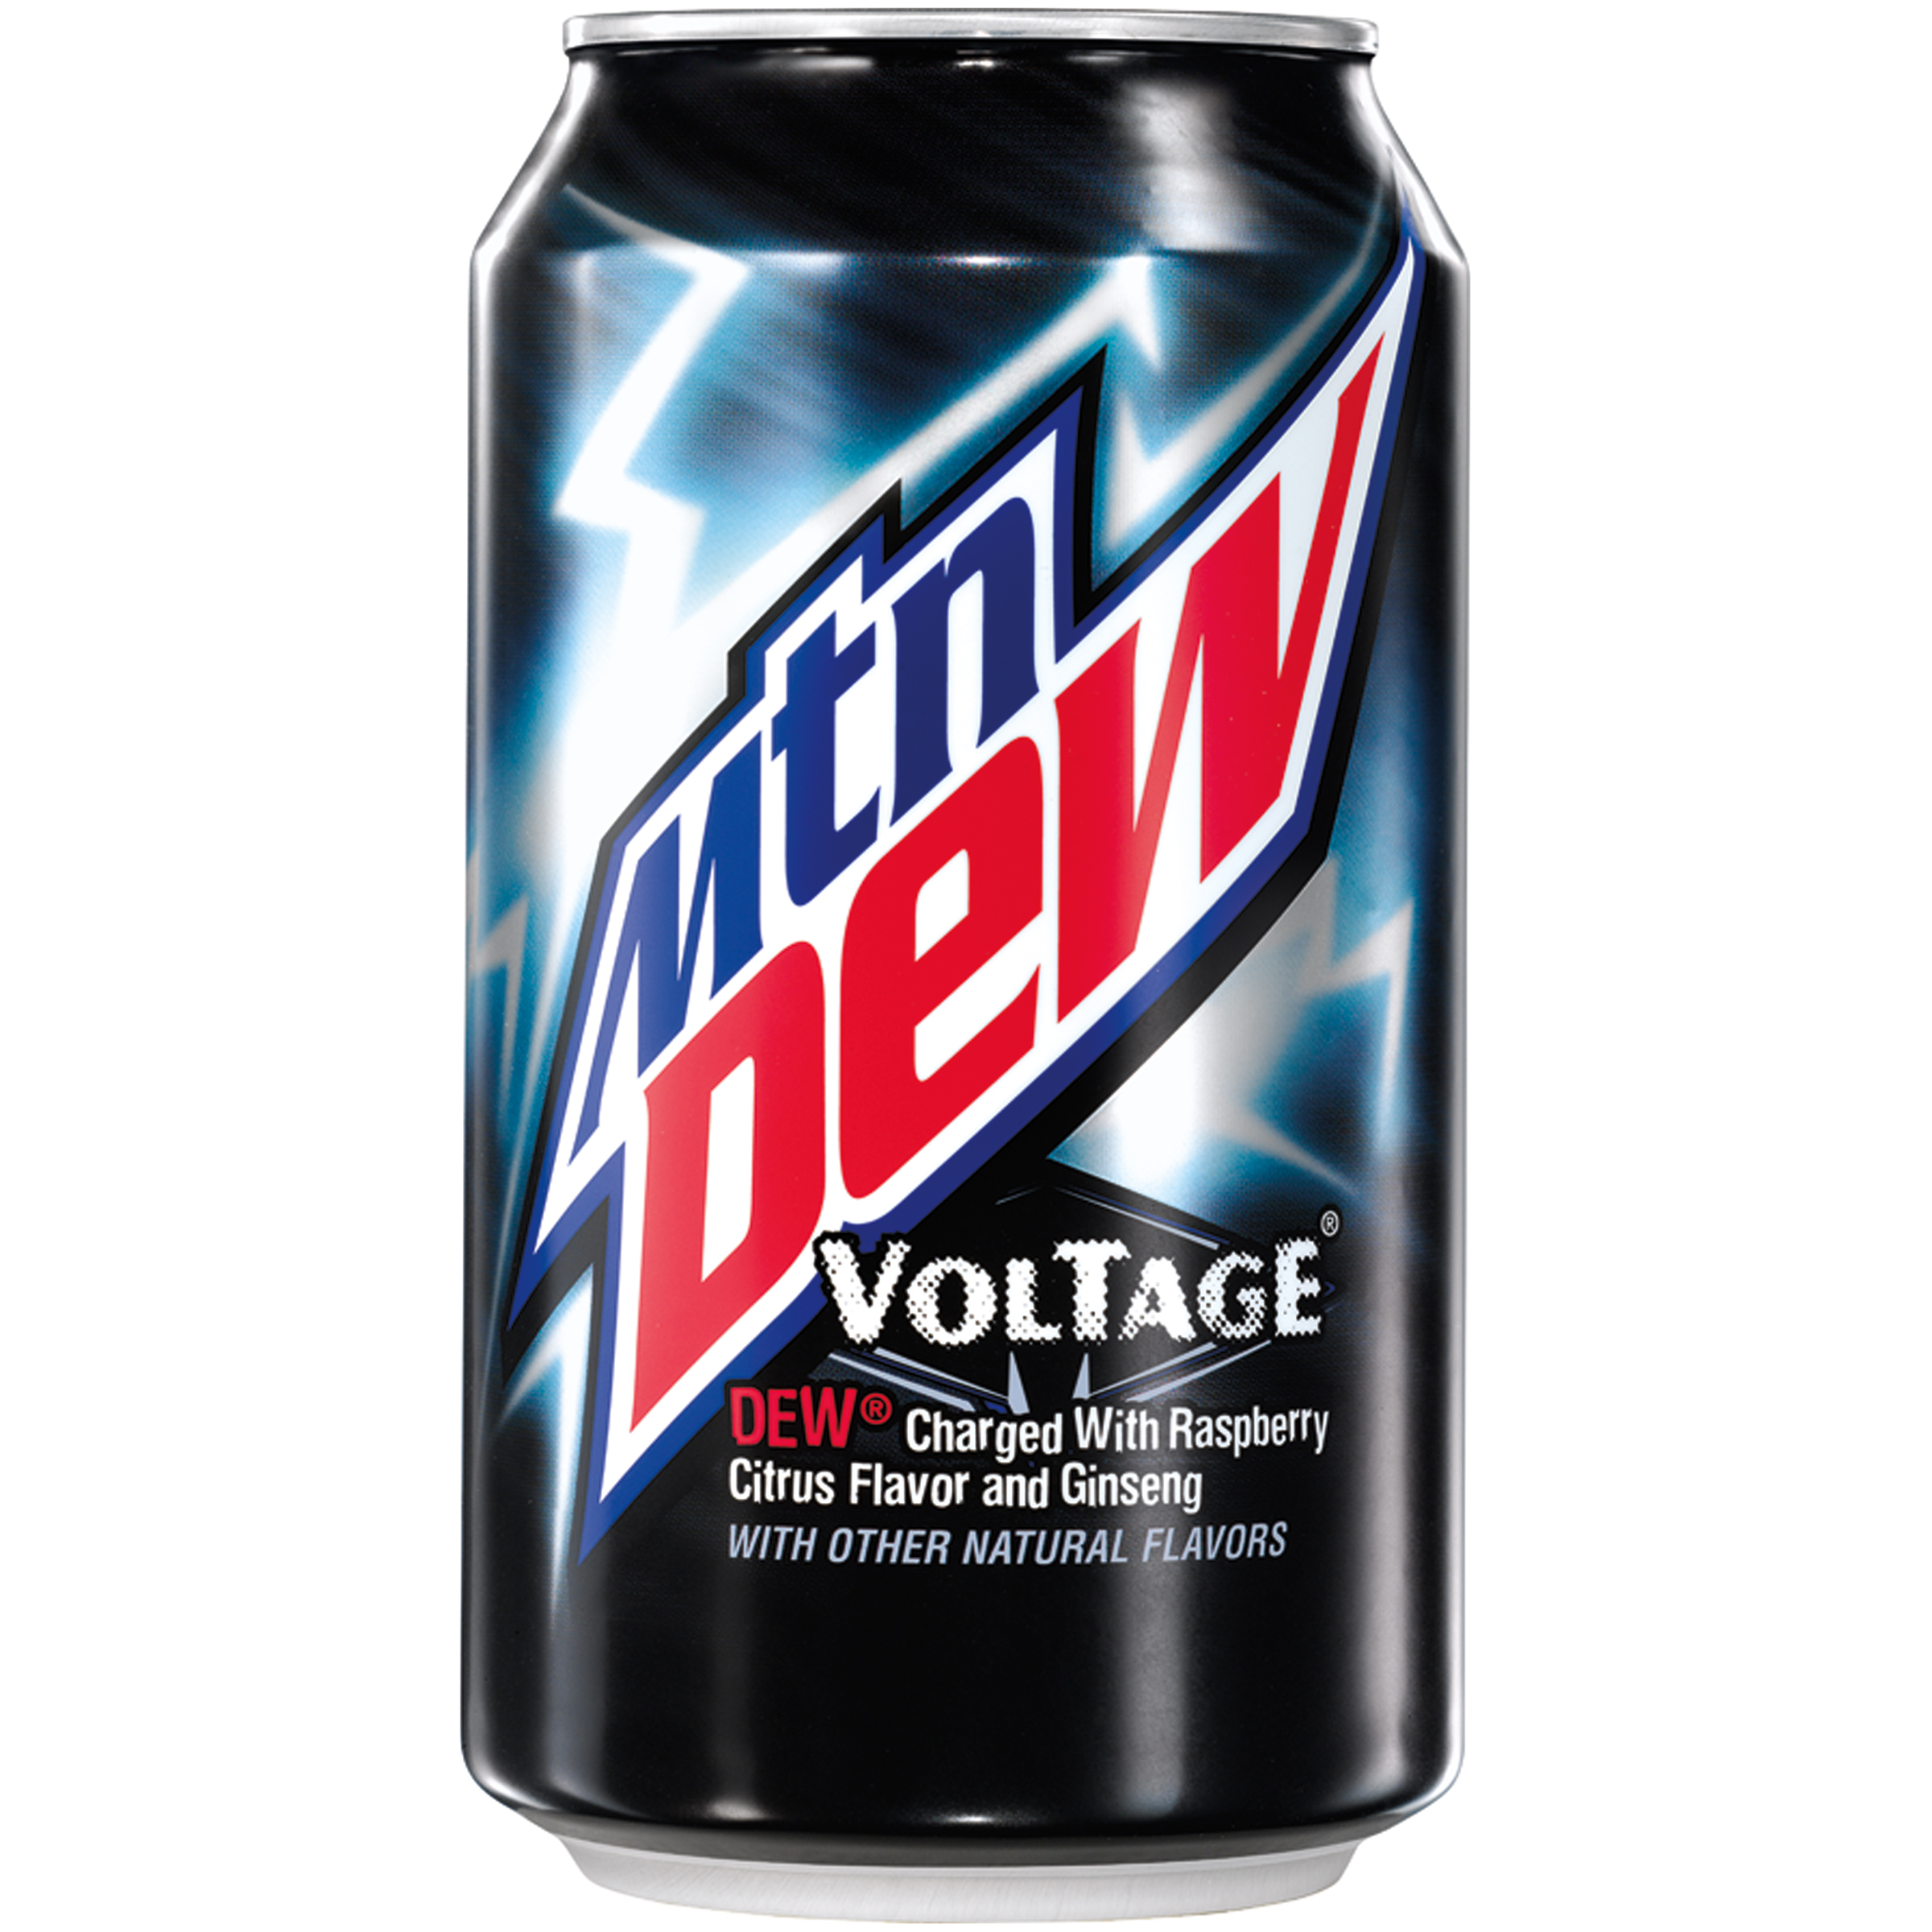 Related keywords suggestions for mountain dew voltage